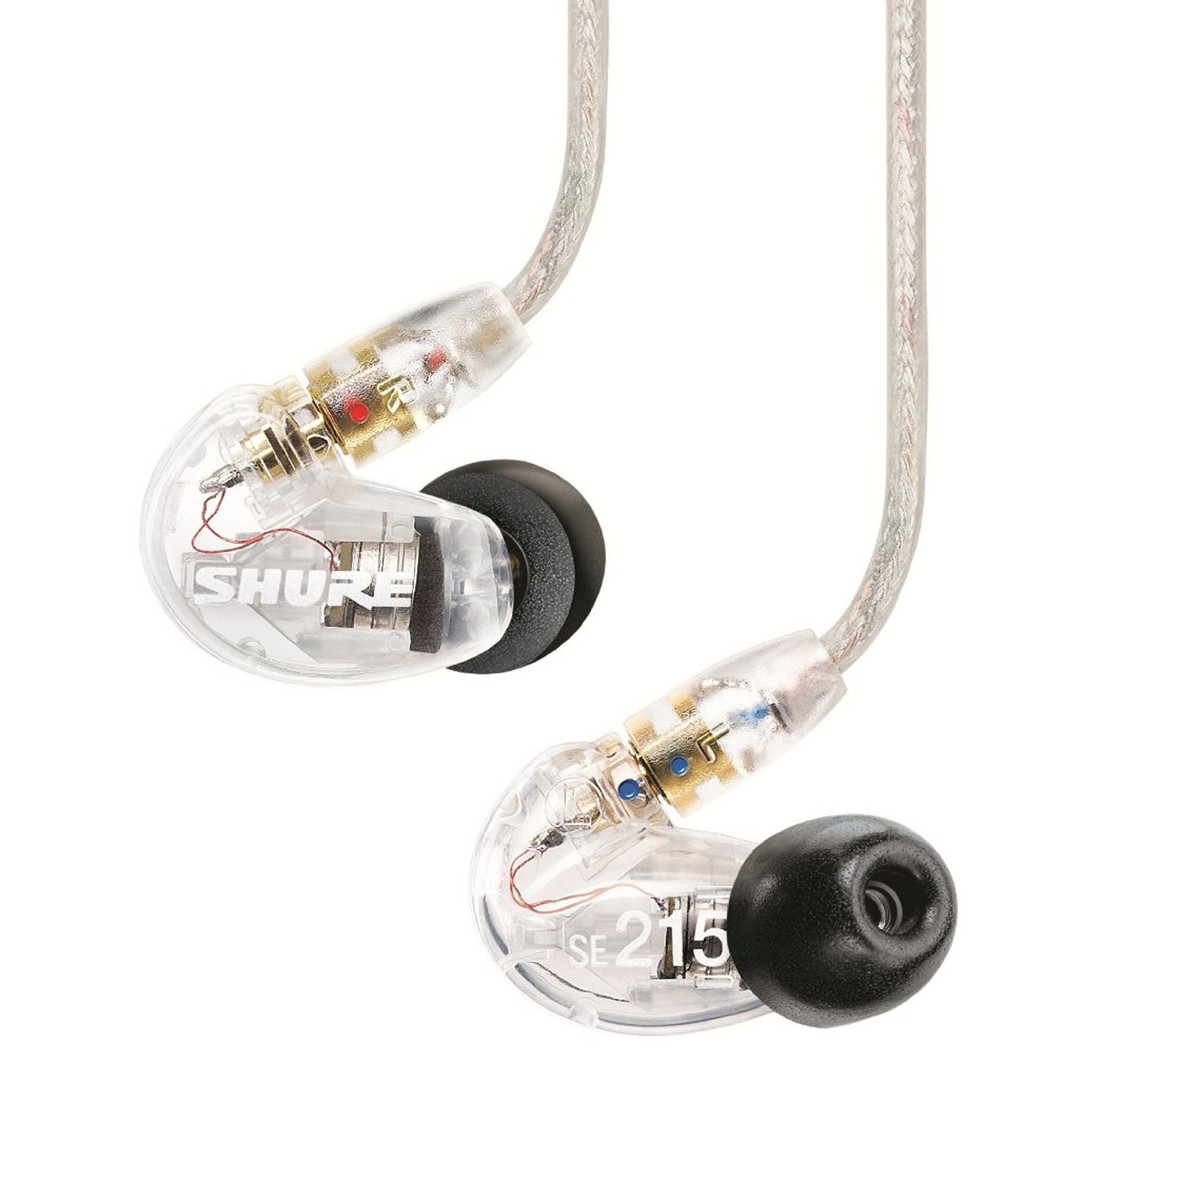 Shure Se215 Sound Isolation Earphones Clear At Gear4music Audio Headphones Having On Volume Control Wiring